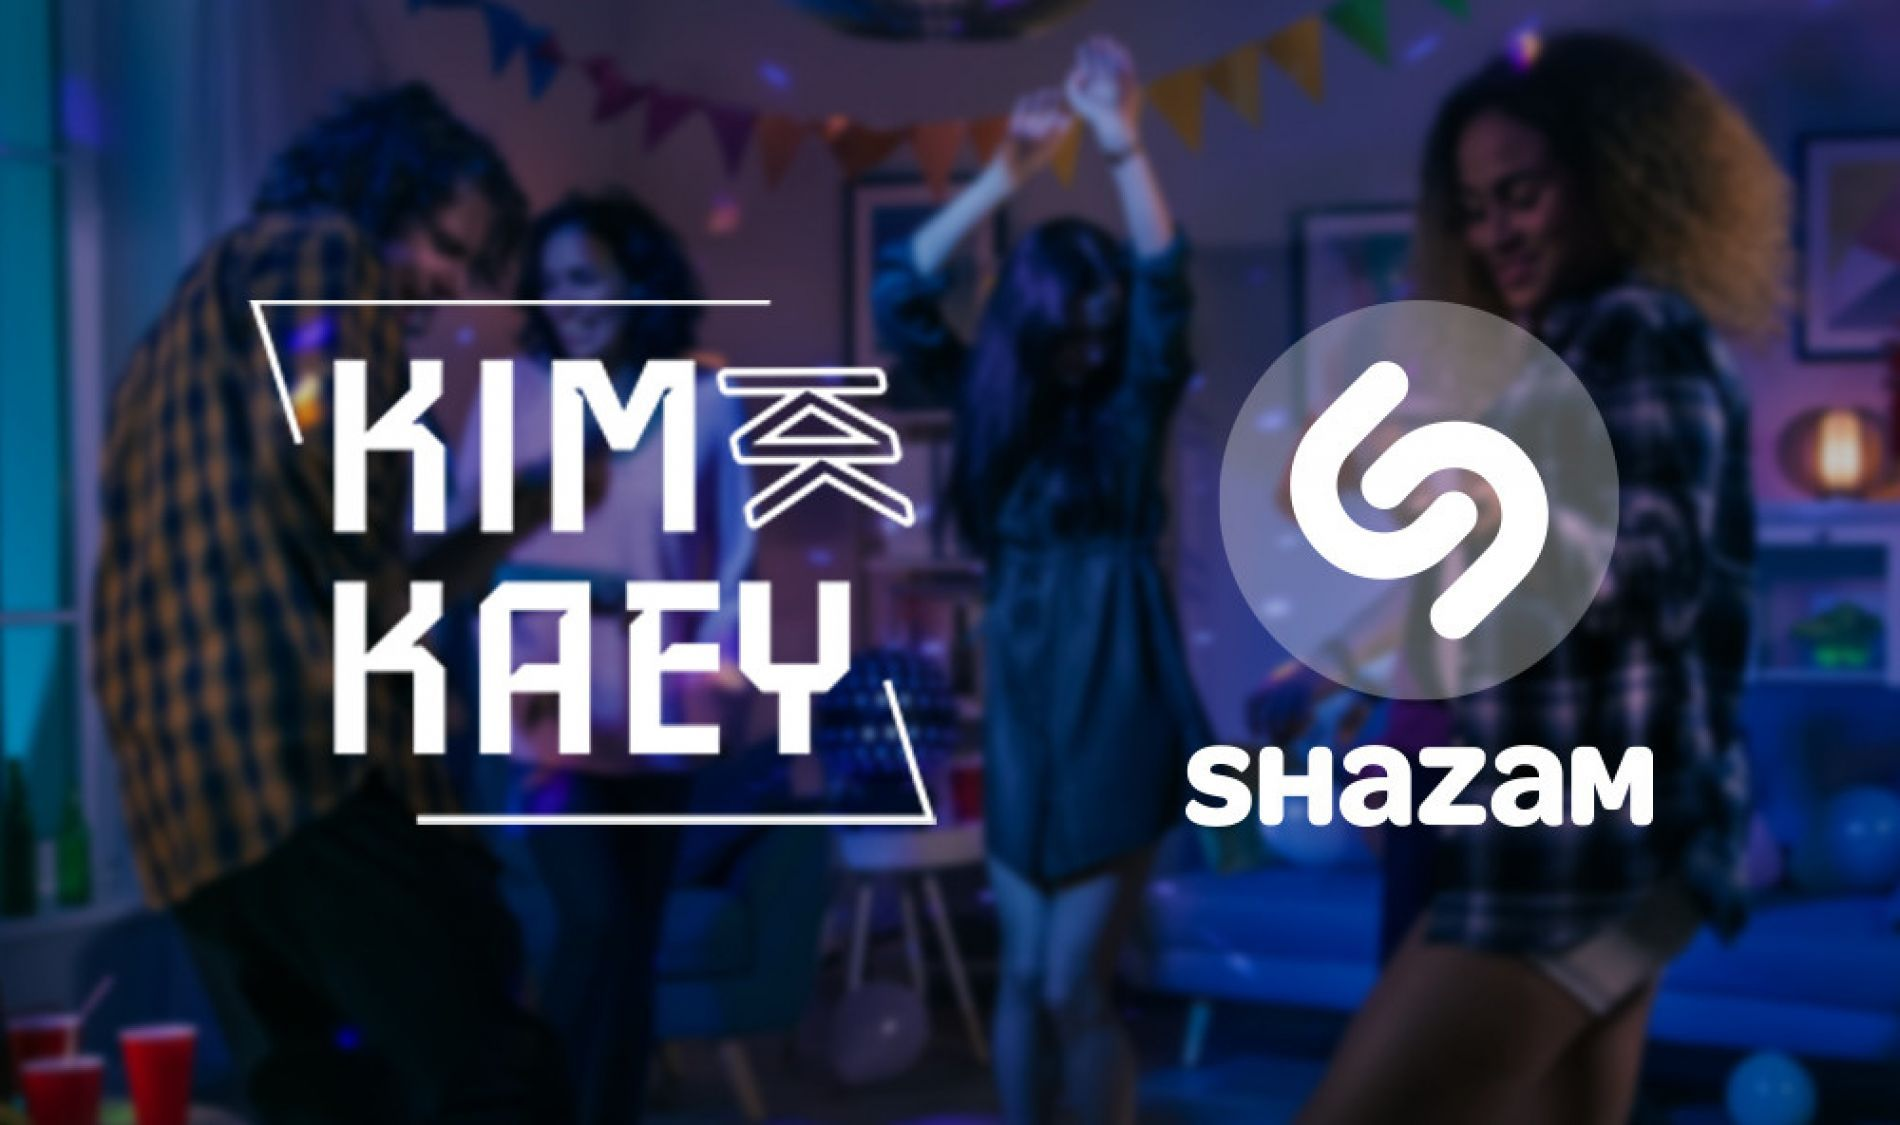 Shazam to win a private houseparty with Kim Kaey!